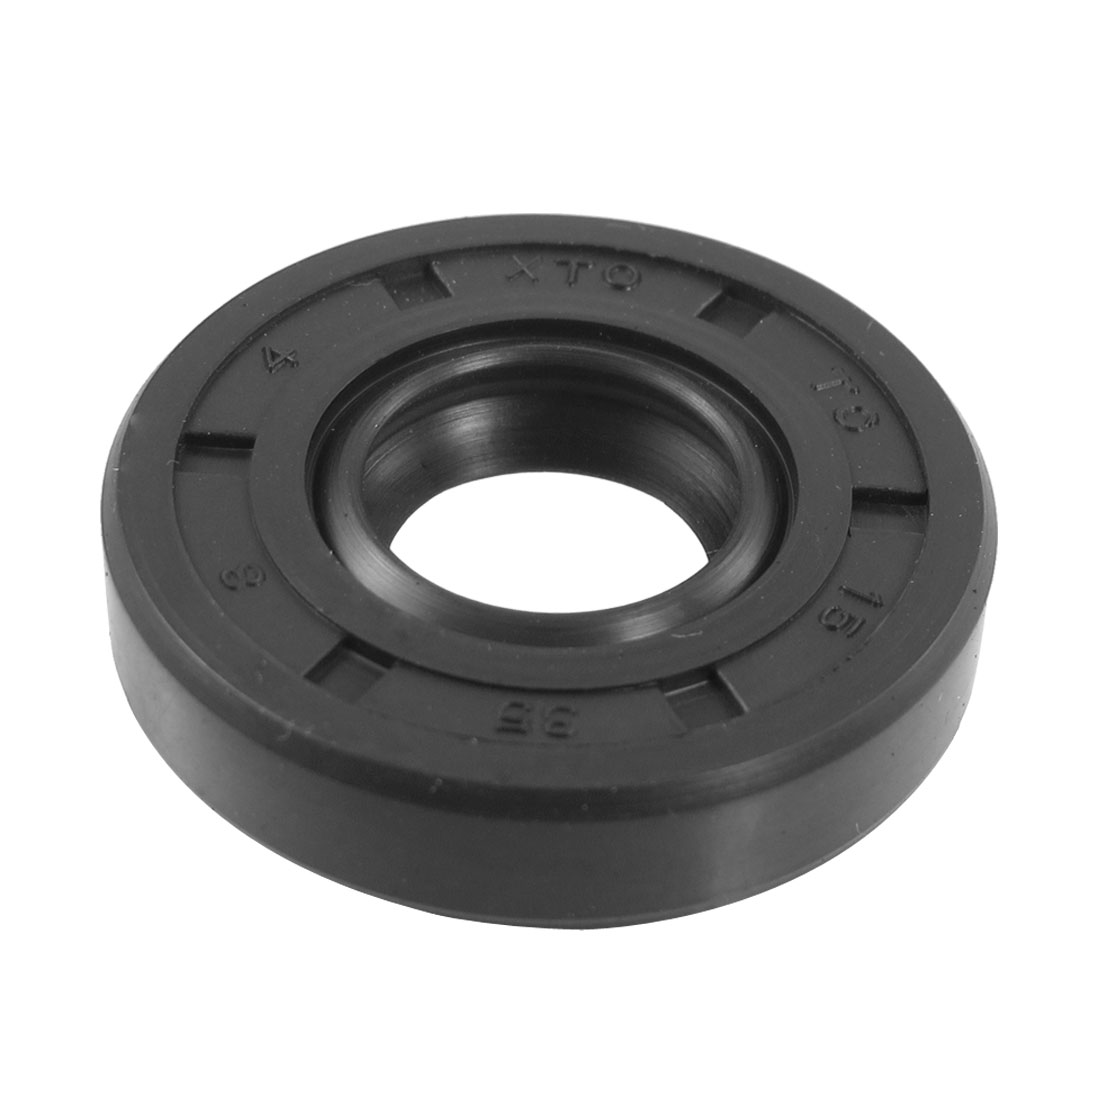 Black Nitrile Rubber Dual Lips Oil Shaft Seal TC 15mm x 35mm x 8mm